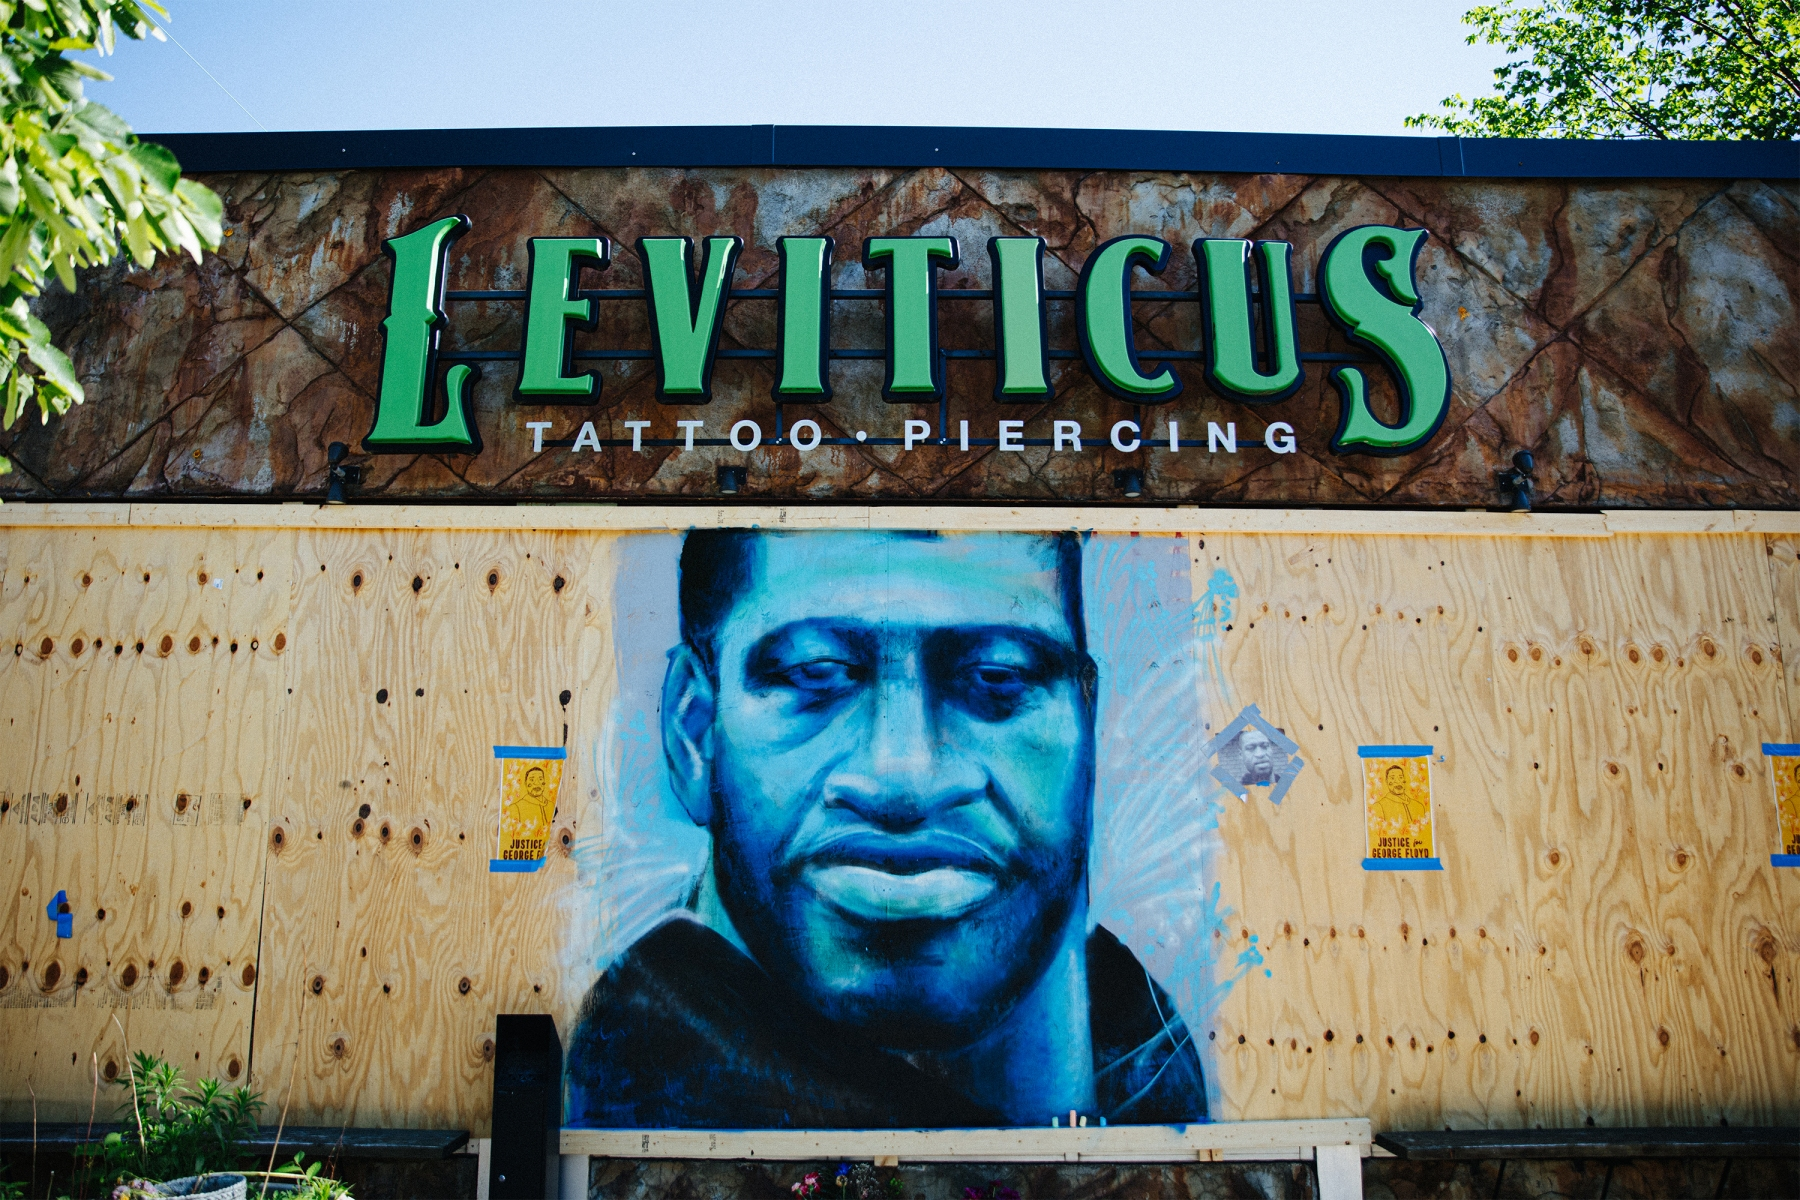 A blue and black portrait of George Floyd on Leviticus Tattoo and Piercing